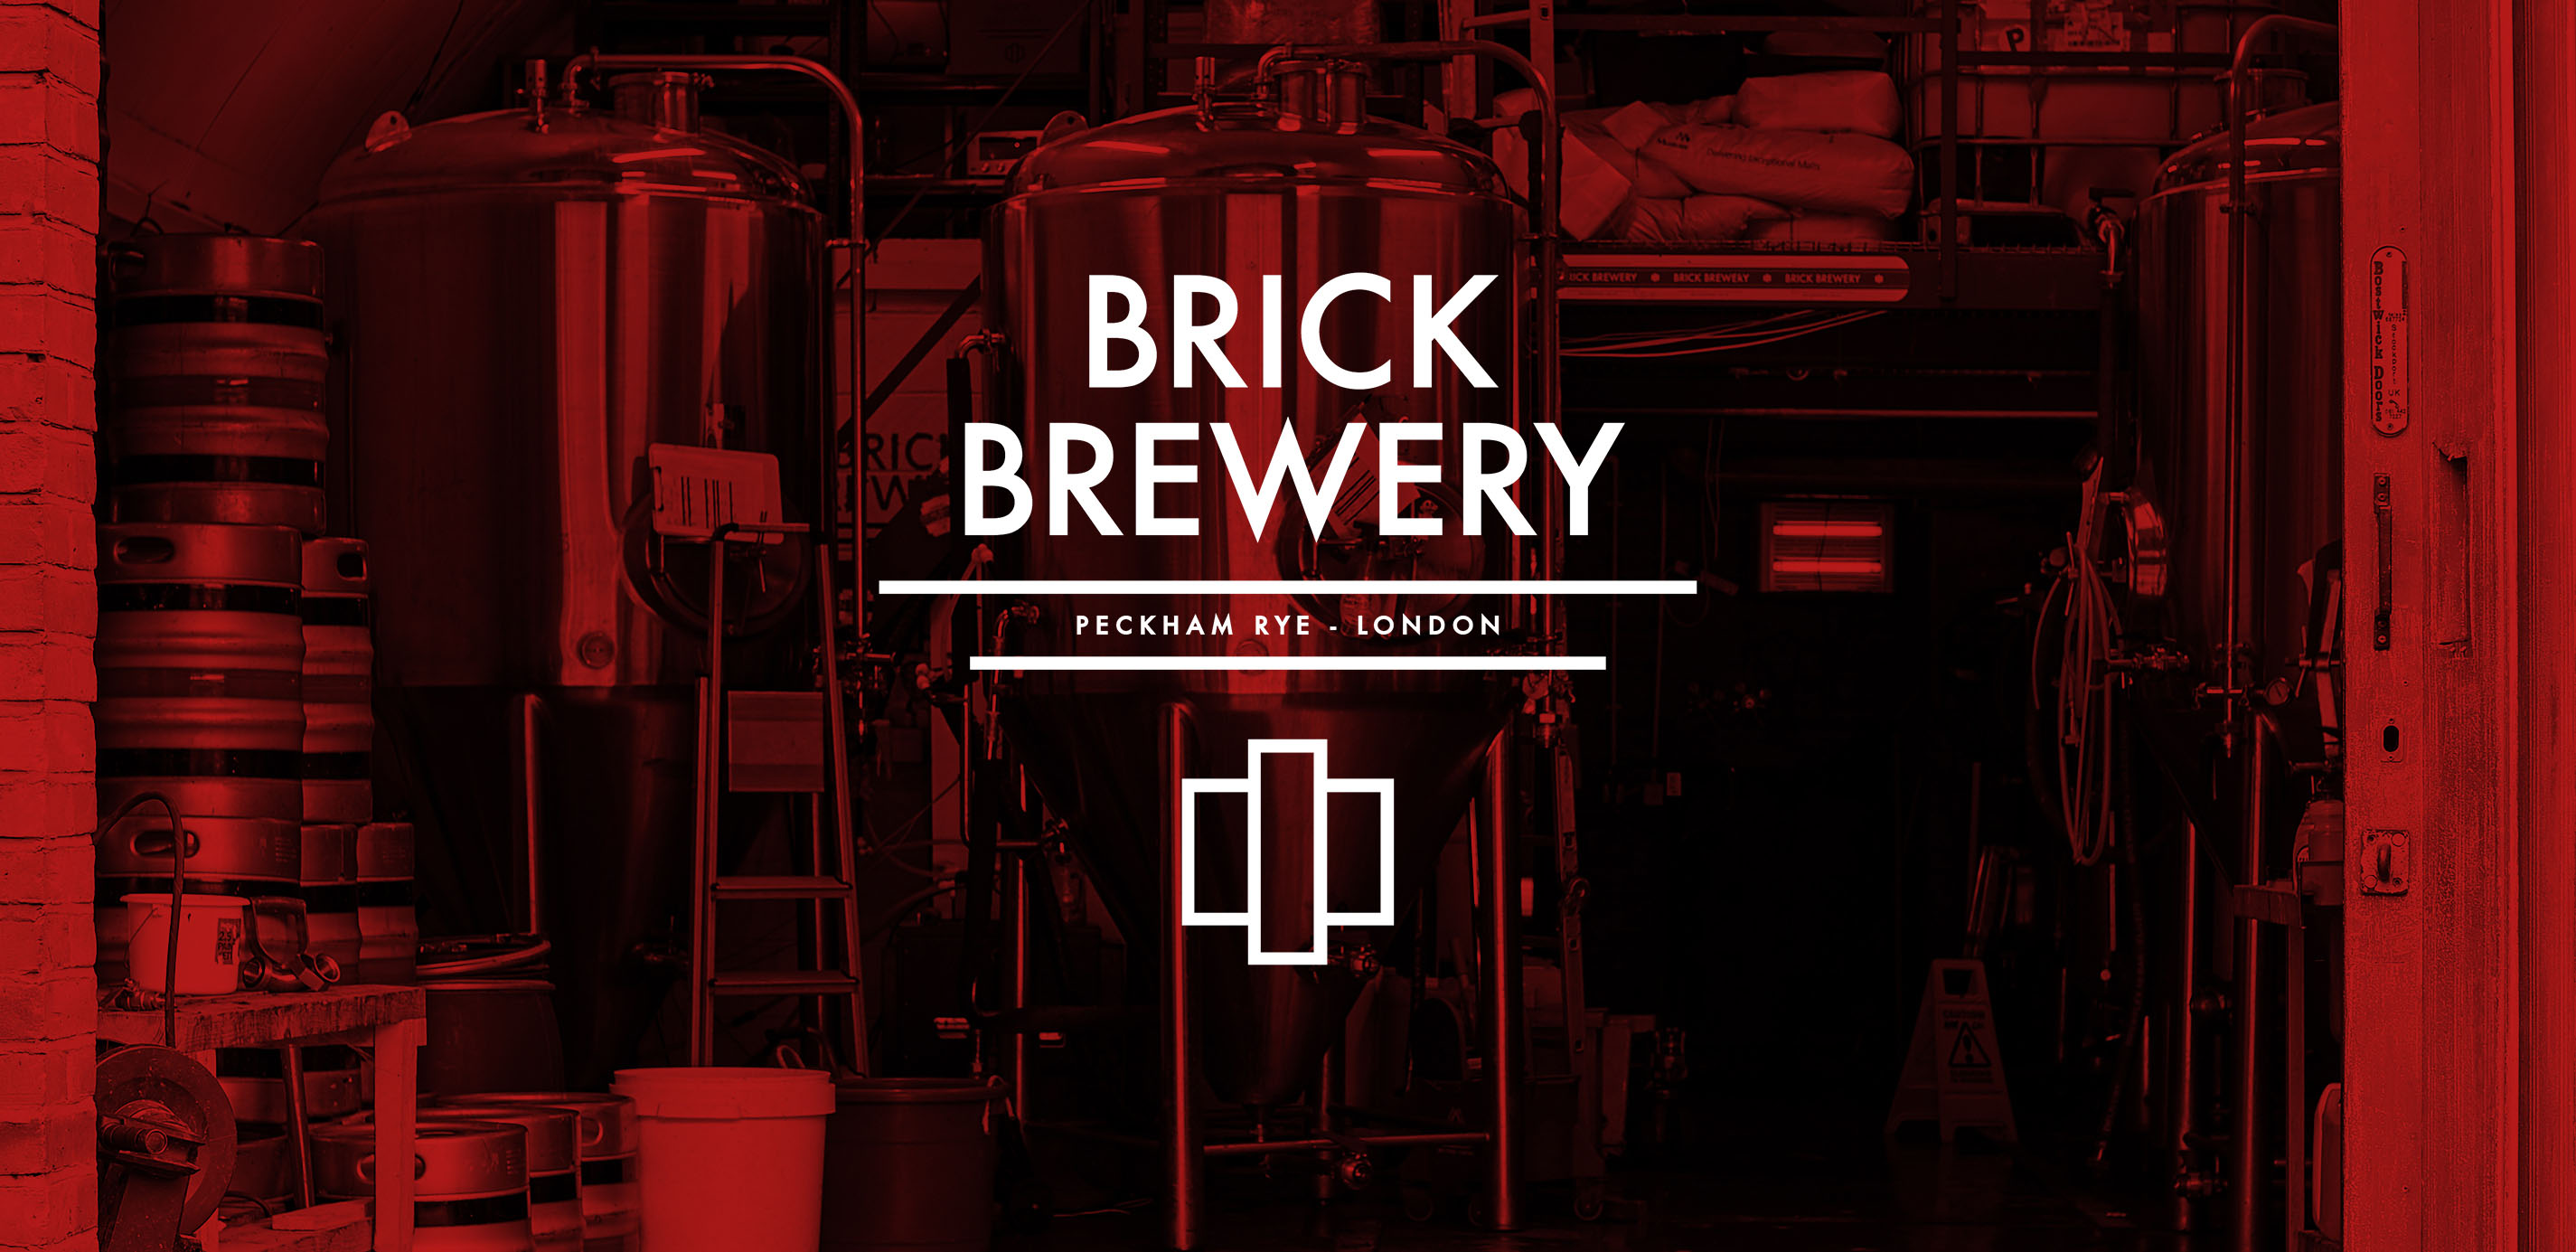 micro brewery equipment at Brick Brewery, Peckham